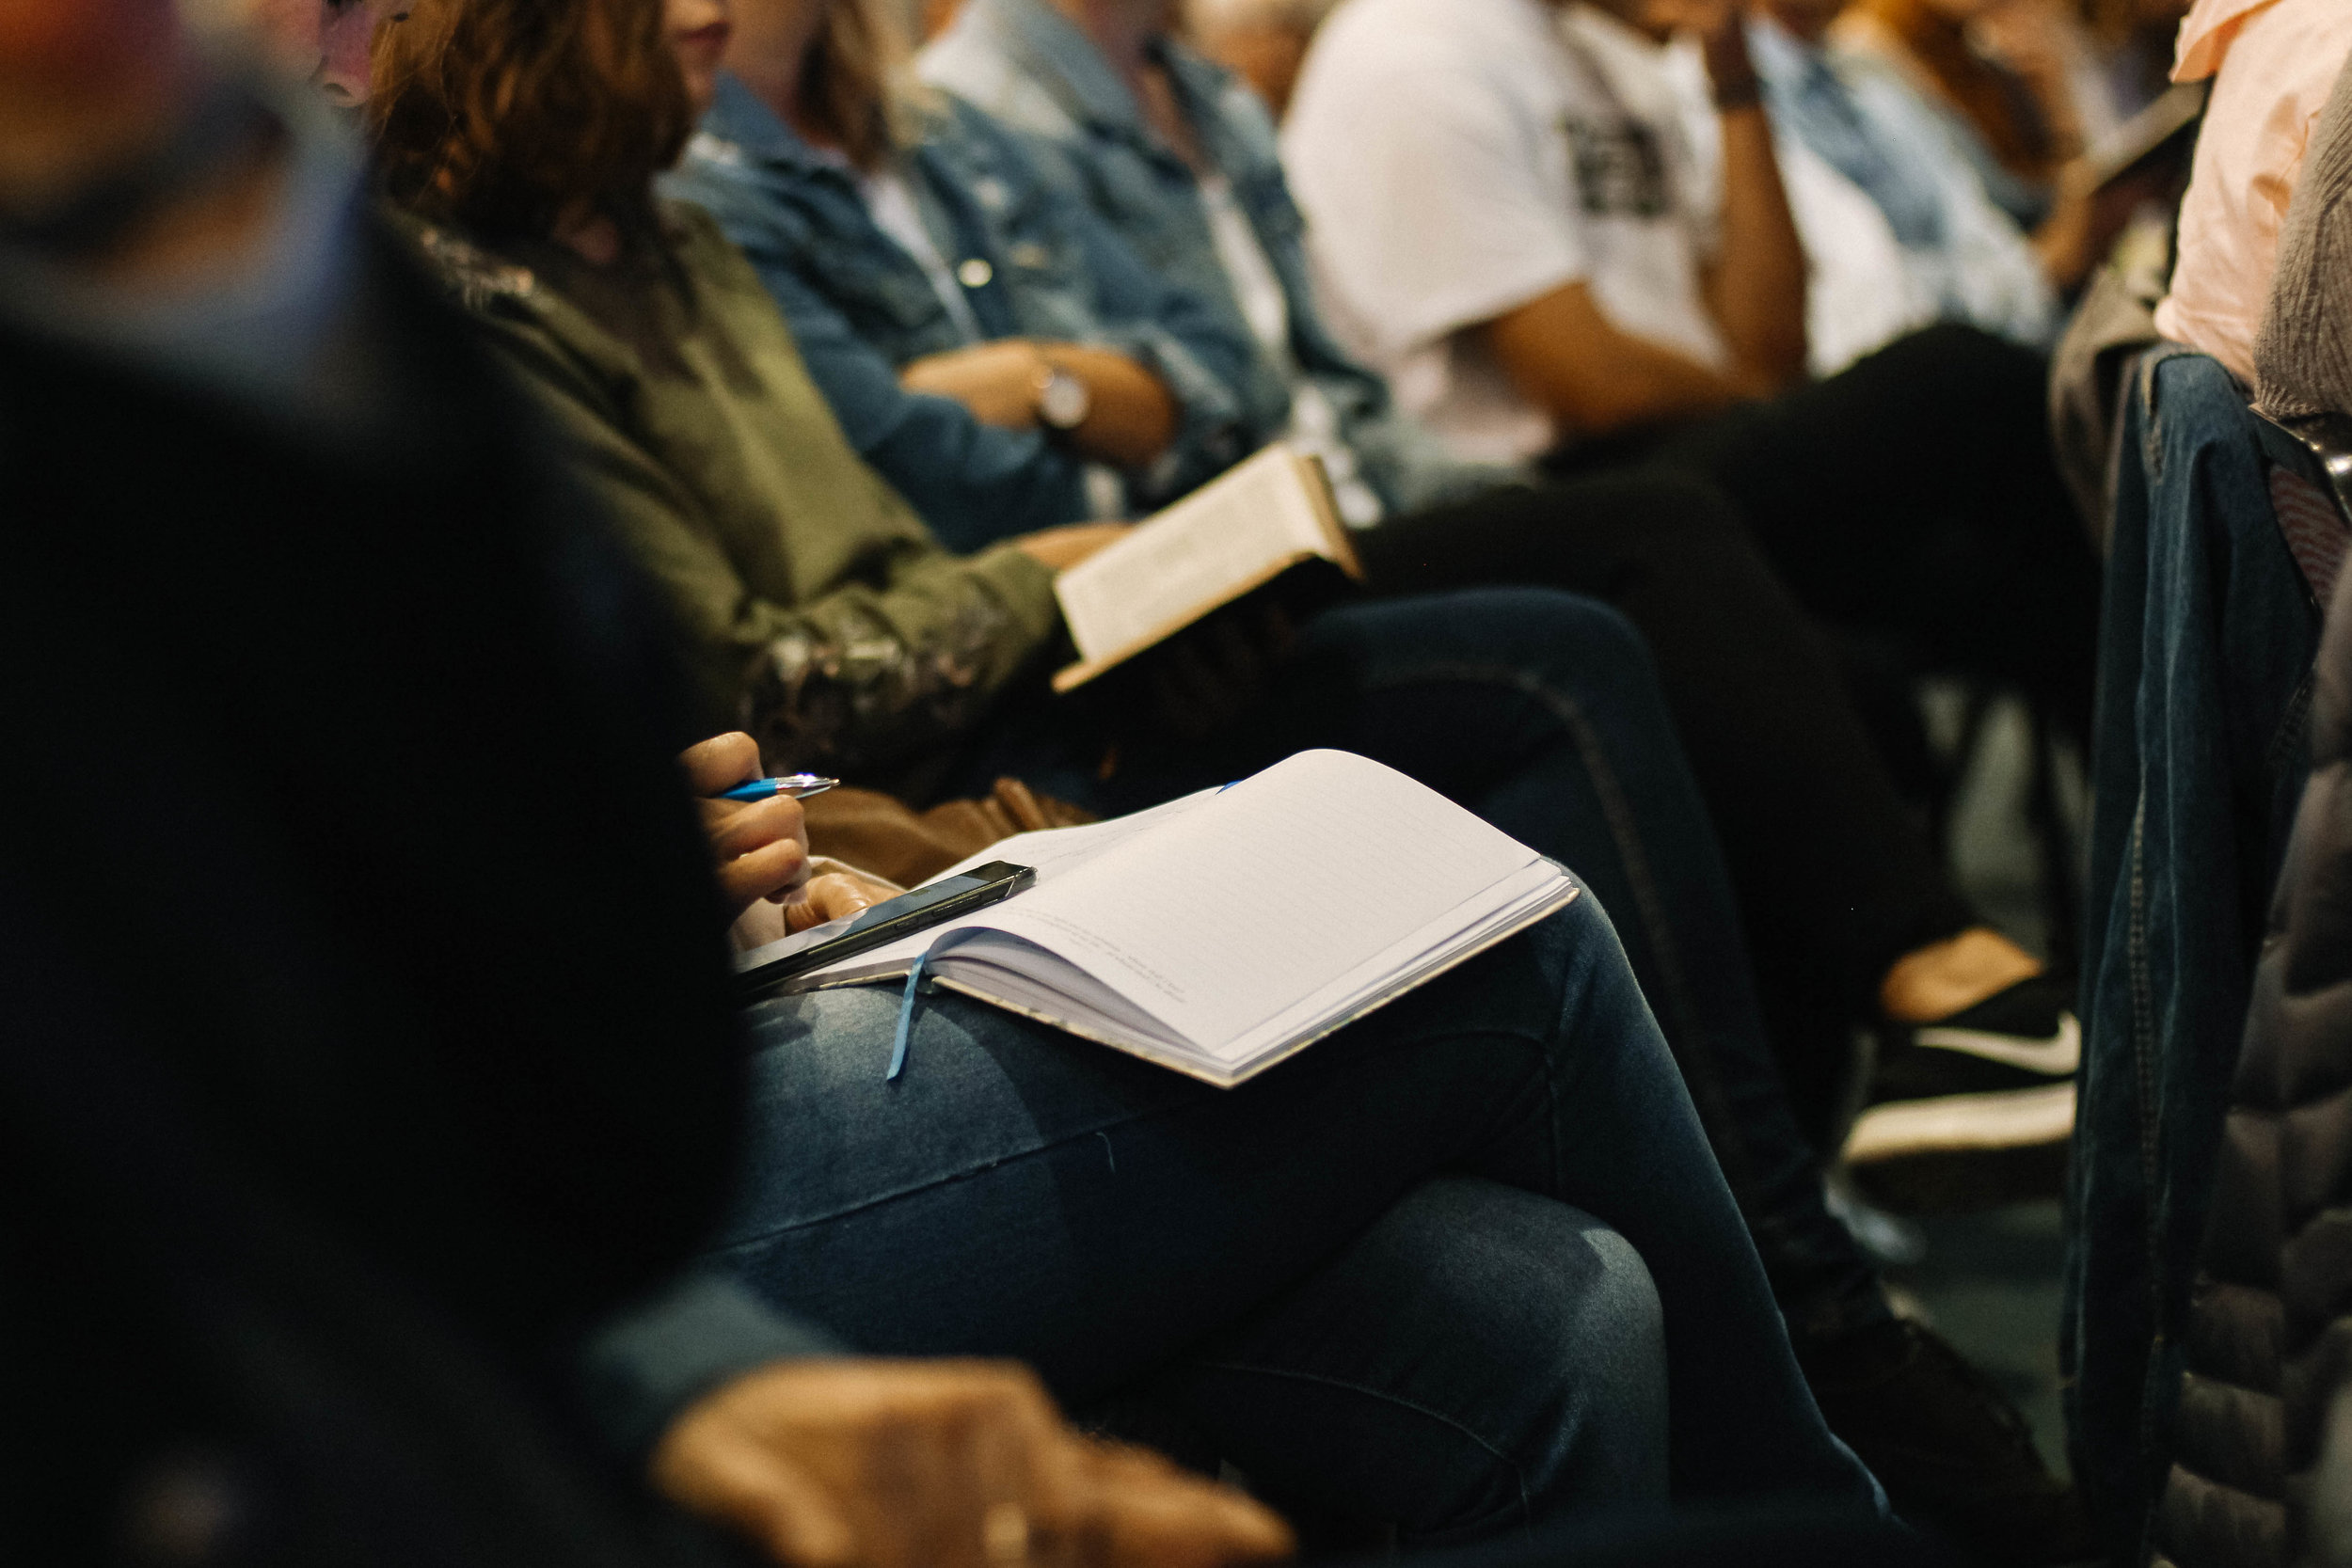 Taking the Next Step - Ok – I enjoyed worshiping at Immanuel. I heard messages that explained the Bible and made it relevant to my life. I am interested in exploring more about the Christian faith, Immanuel's beliefs and maybe even getting better connected at Immanuel. How do I do that?